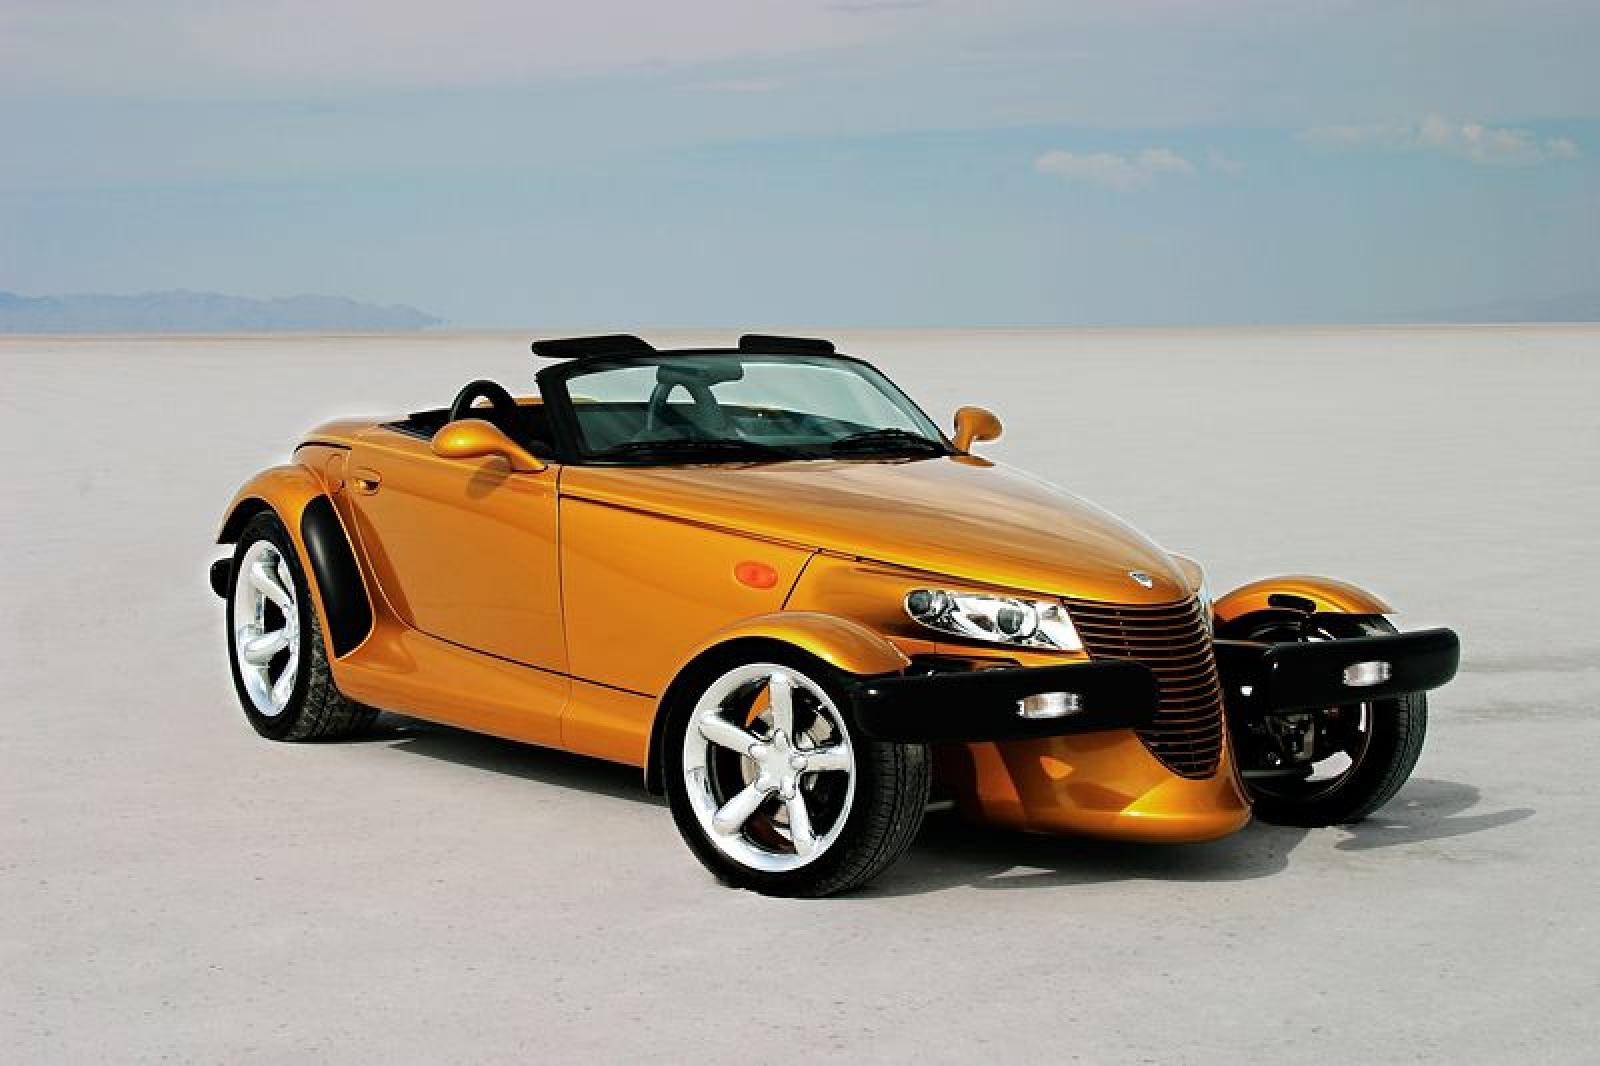 53572236 likewise The Secret History Of The Plymouth Prowler besides Mopar 426 Elephant Hemi V8 Revealed 28185 likewise 10 Popular Nigerian Celebrities And Their Cars in addition Page 2. on new plymouth prowler